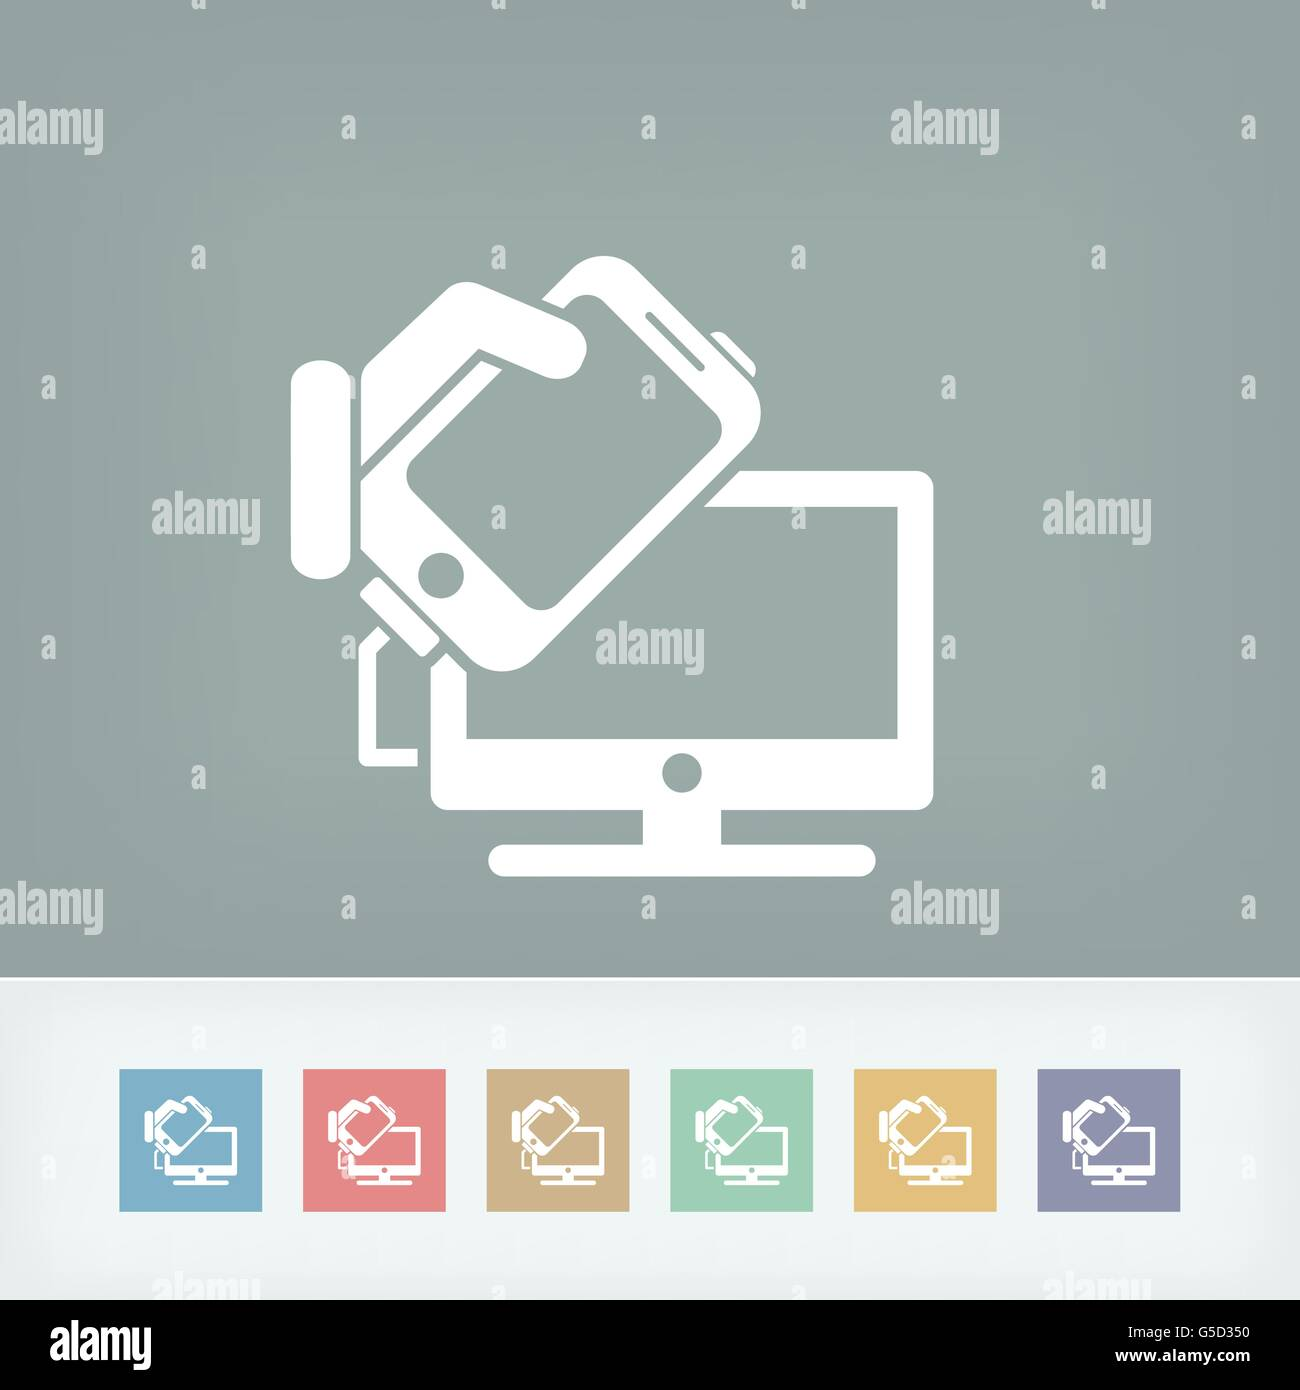 Tv Music Cable Stock Vector Images - Alamy